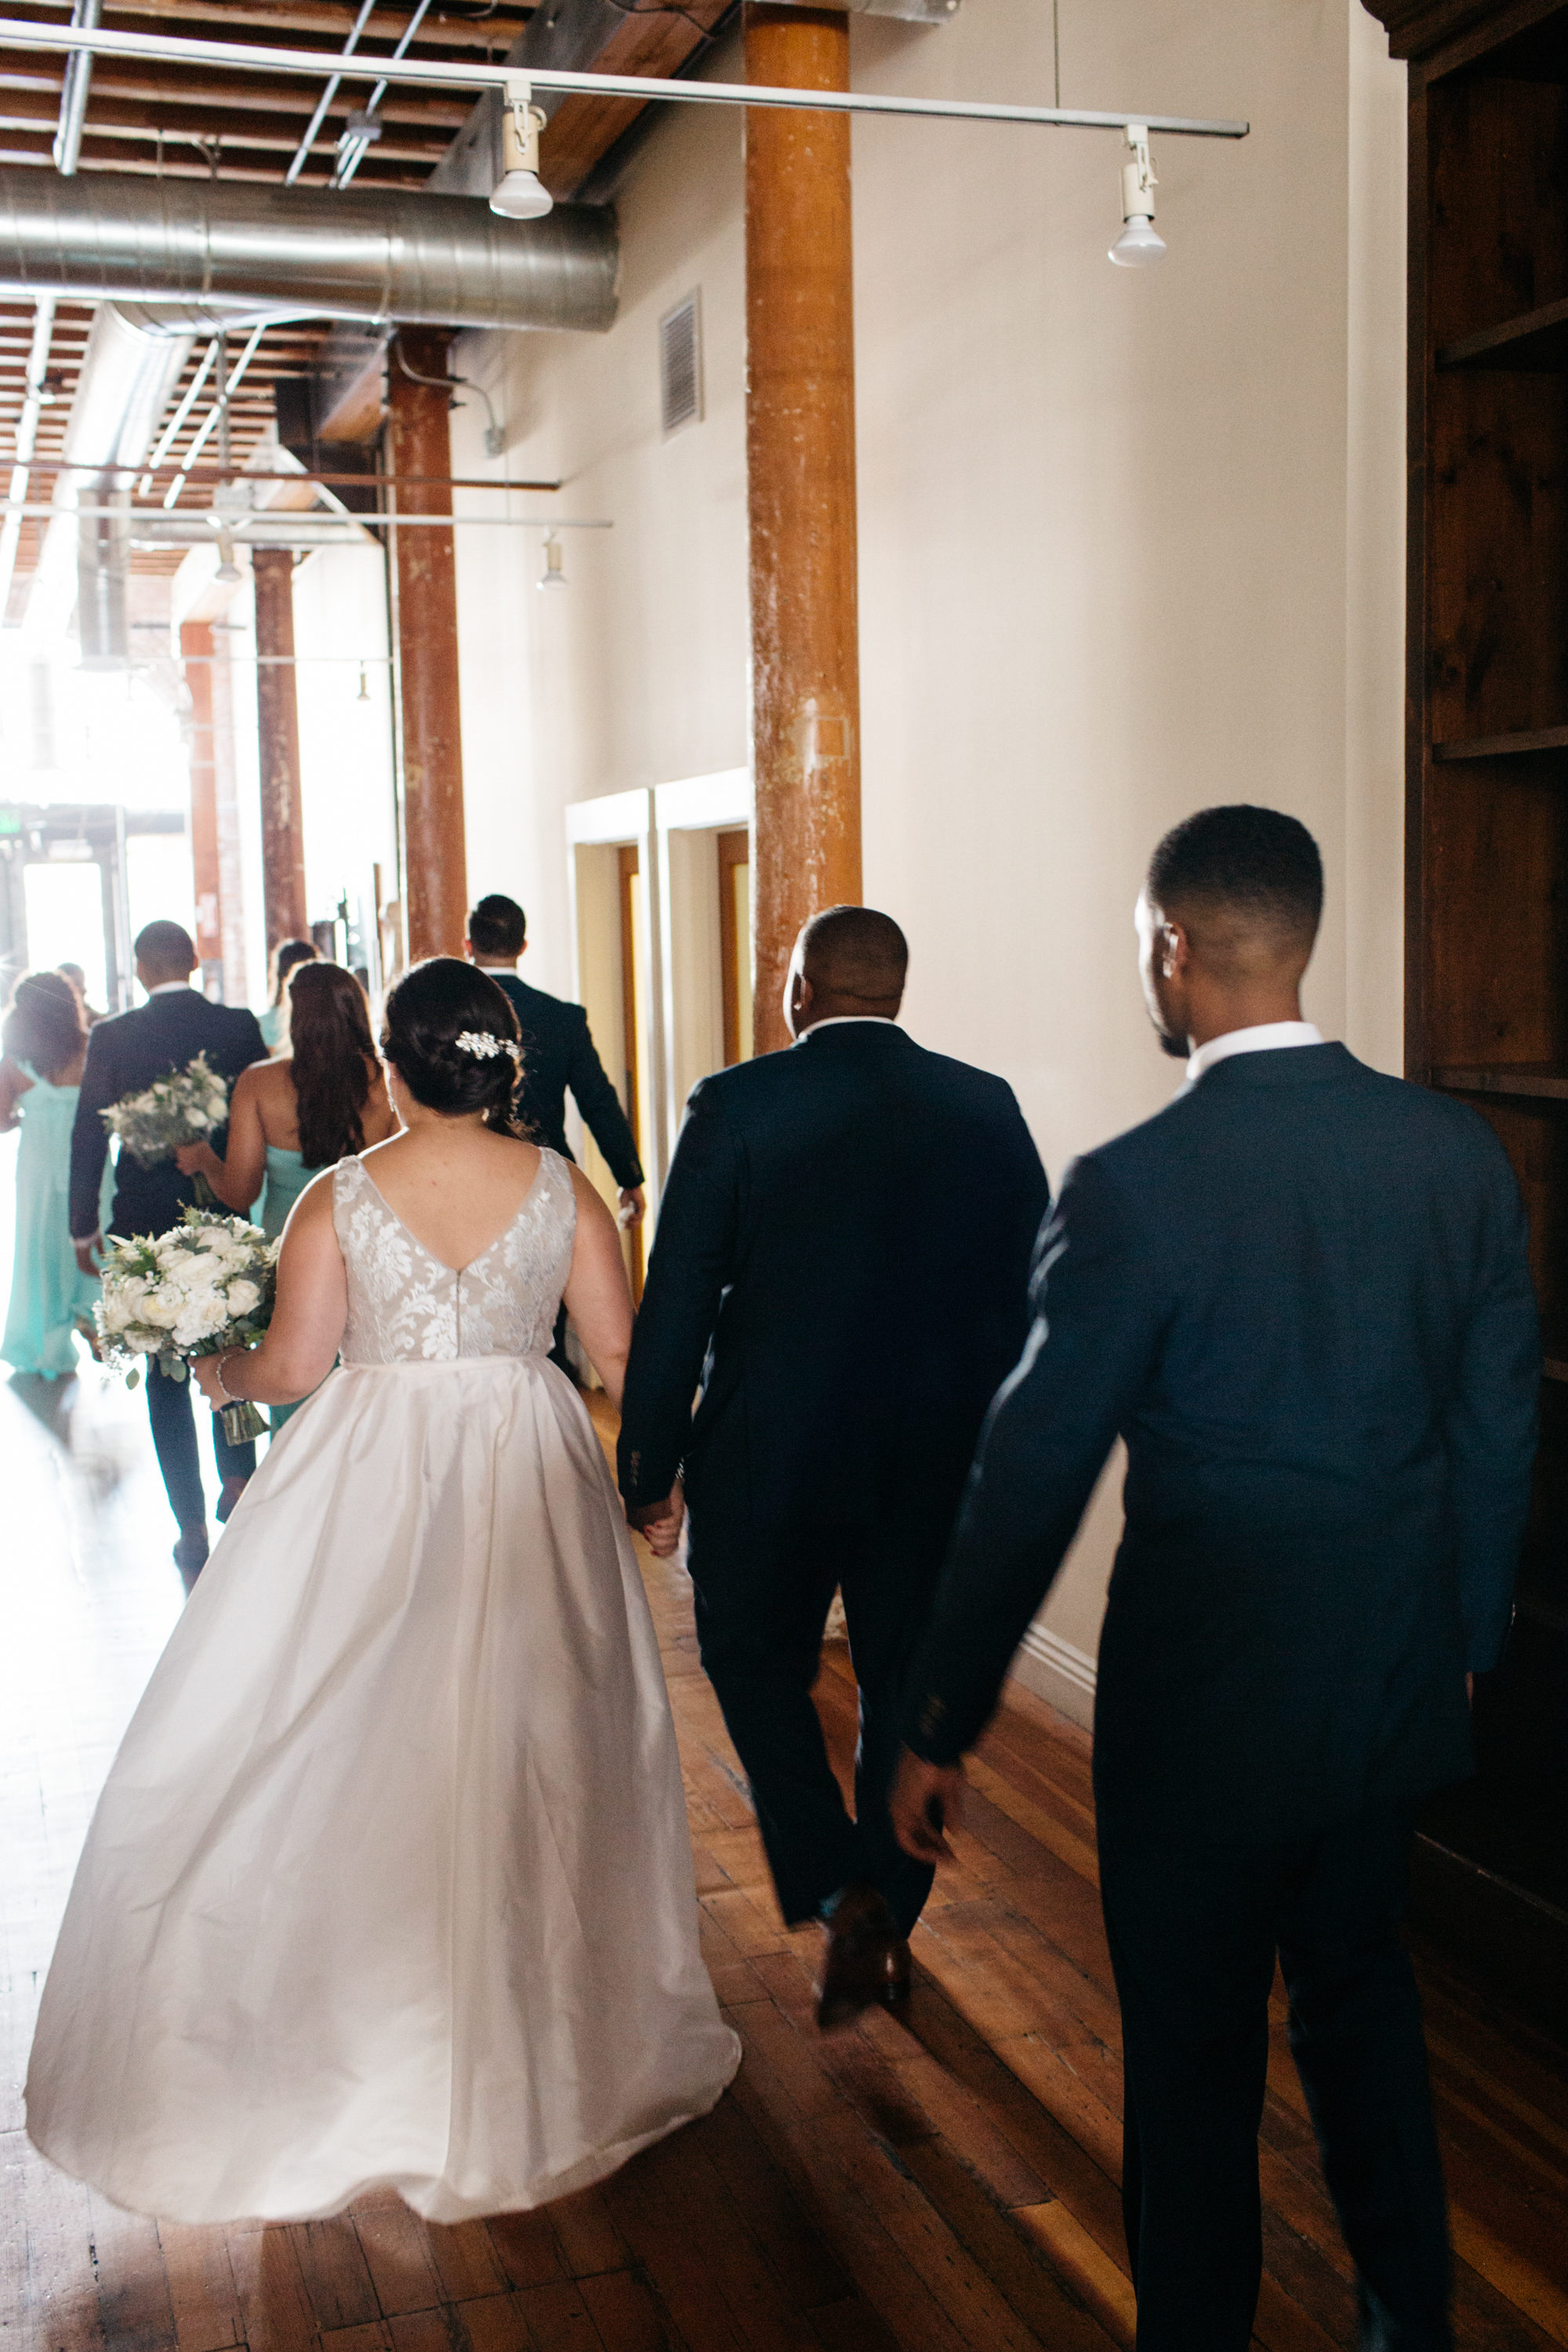 SamErica Studios - Los Angeles Wedding Photographer - The Loft on Pine-2-2.jpg